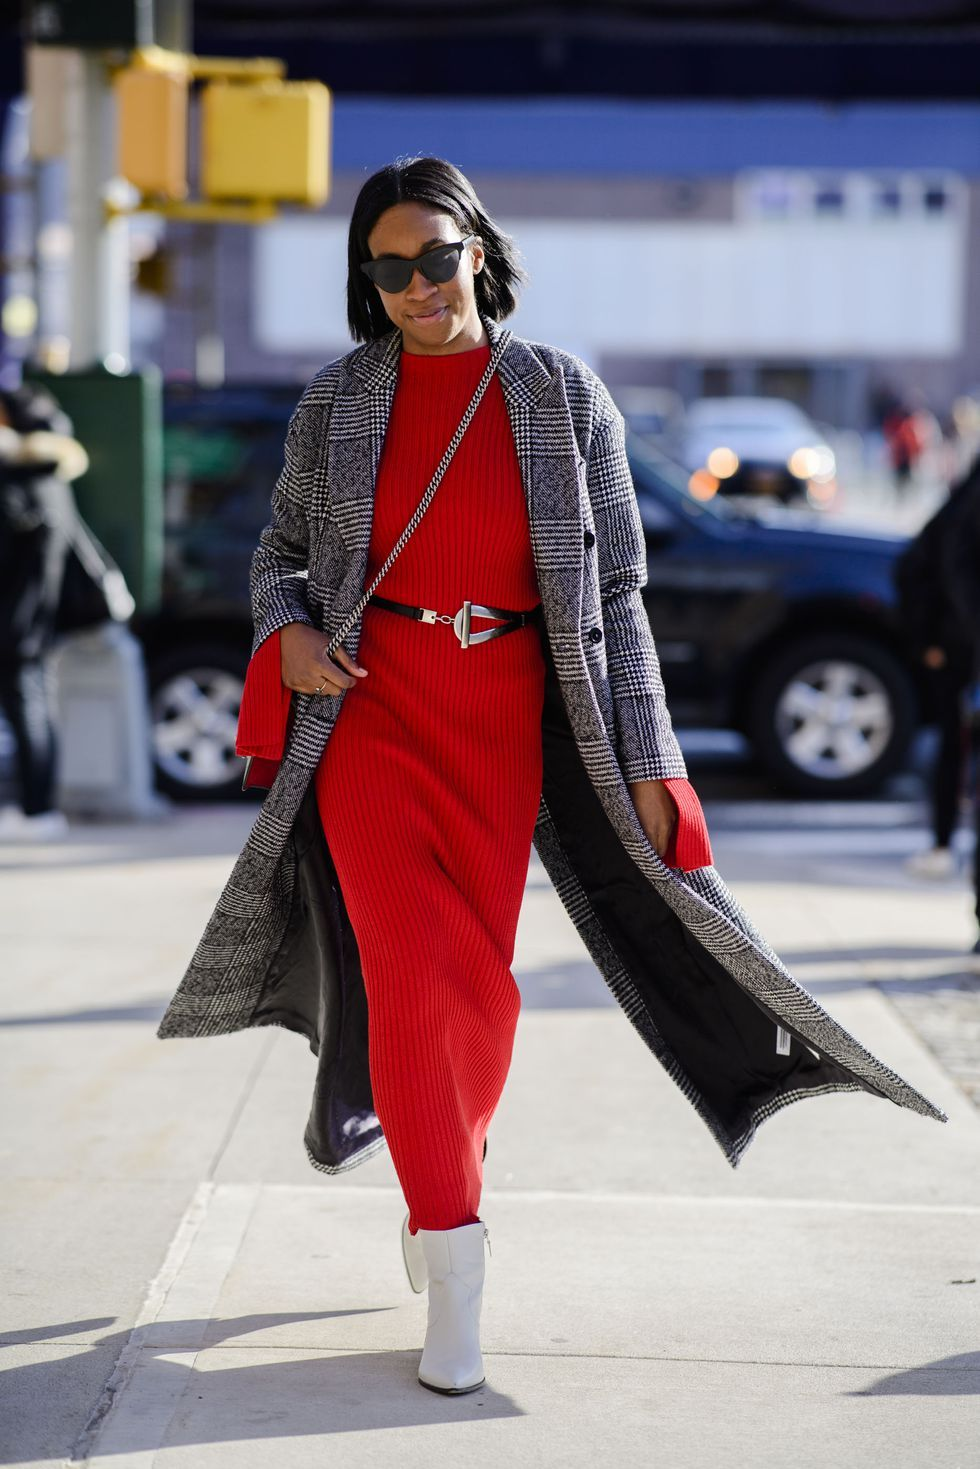 What to Wear to Work on Cold Days